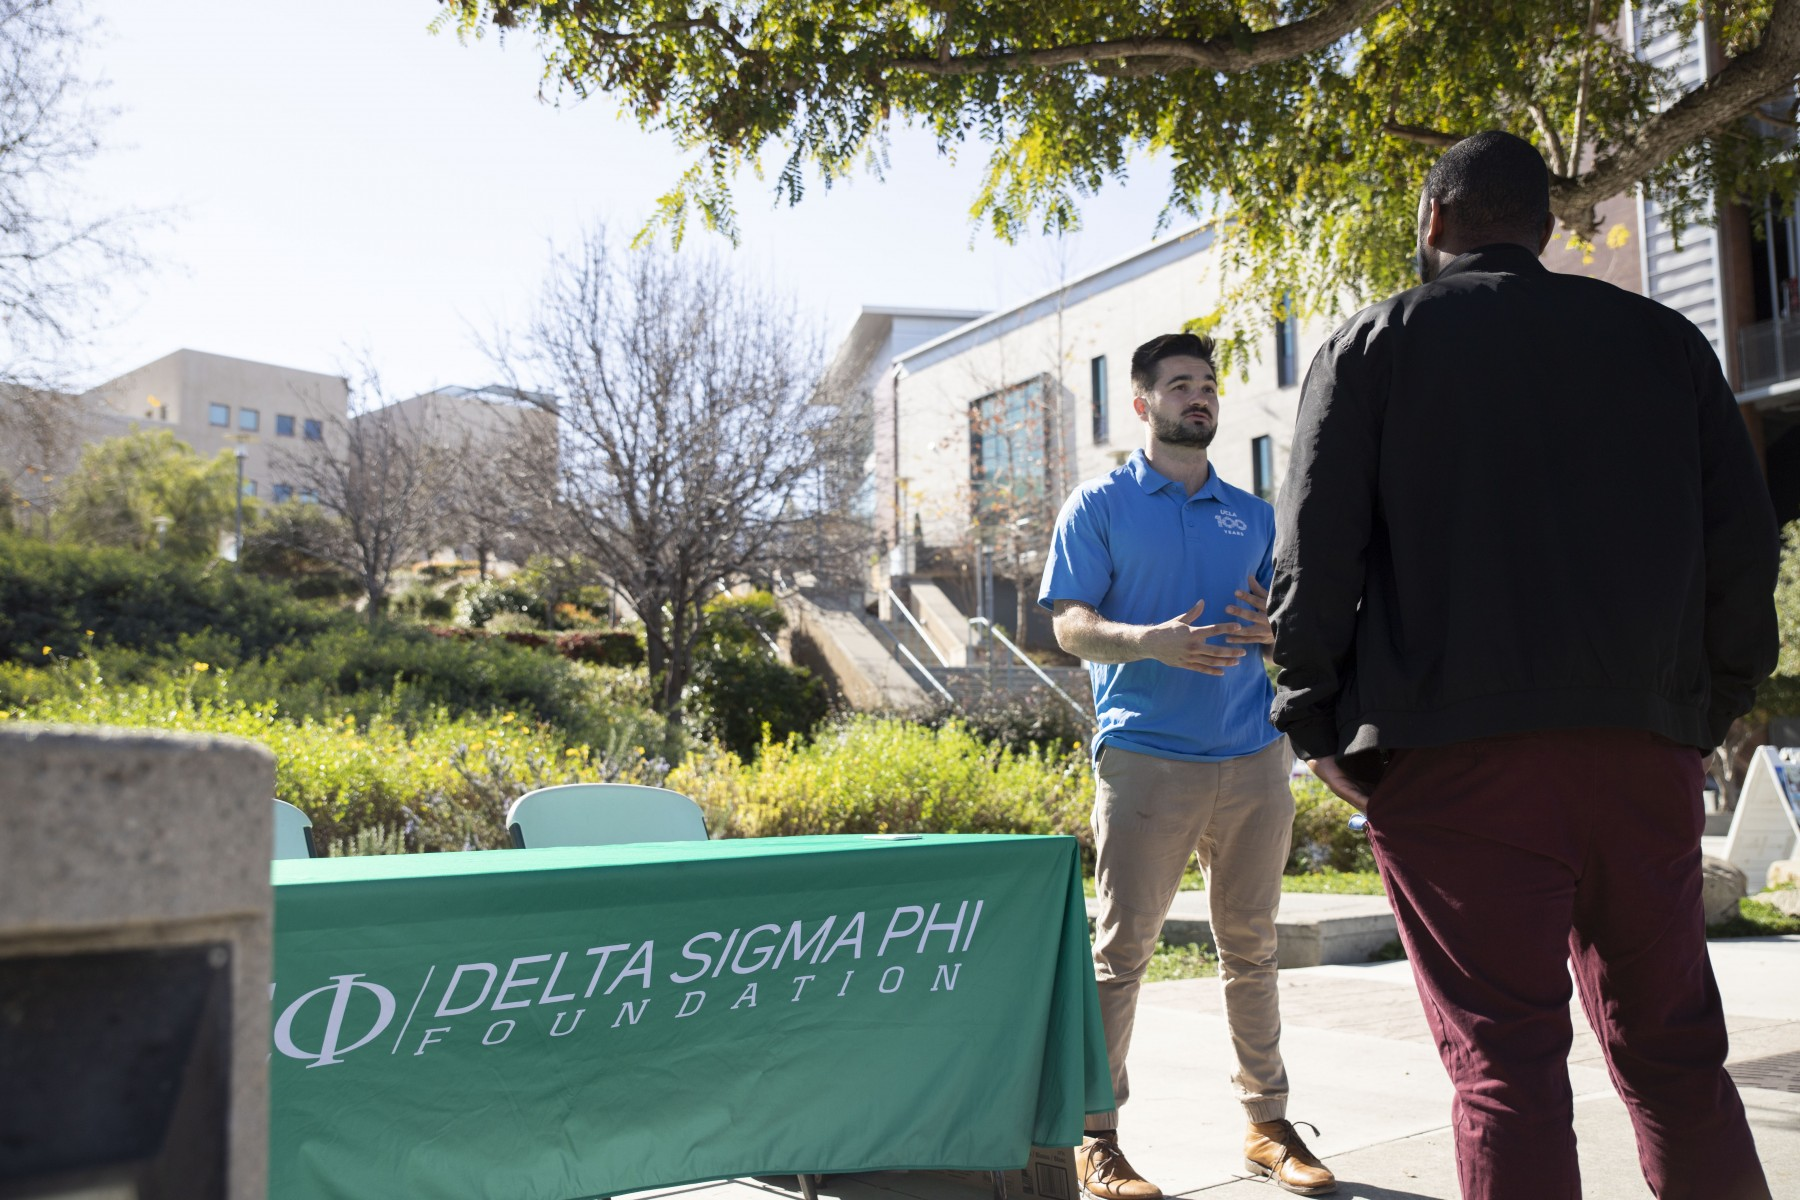 Delta Sigma Phi recruitment specialist Will Miller was on  campus in February to provide information and recruit potential members for the new CSUSM chapter of the fraternity. Photo by Andrew Reed